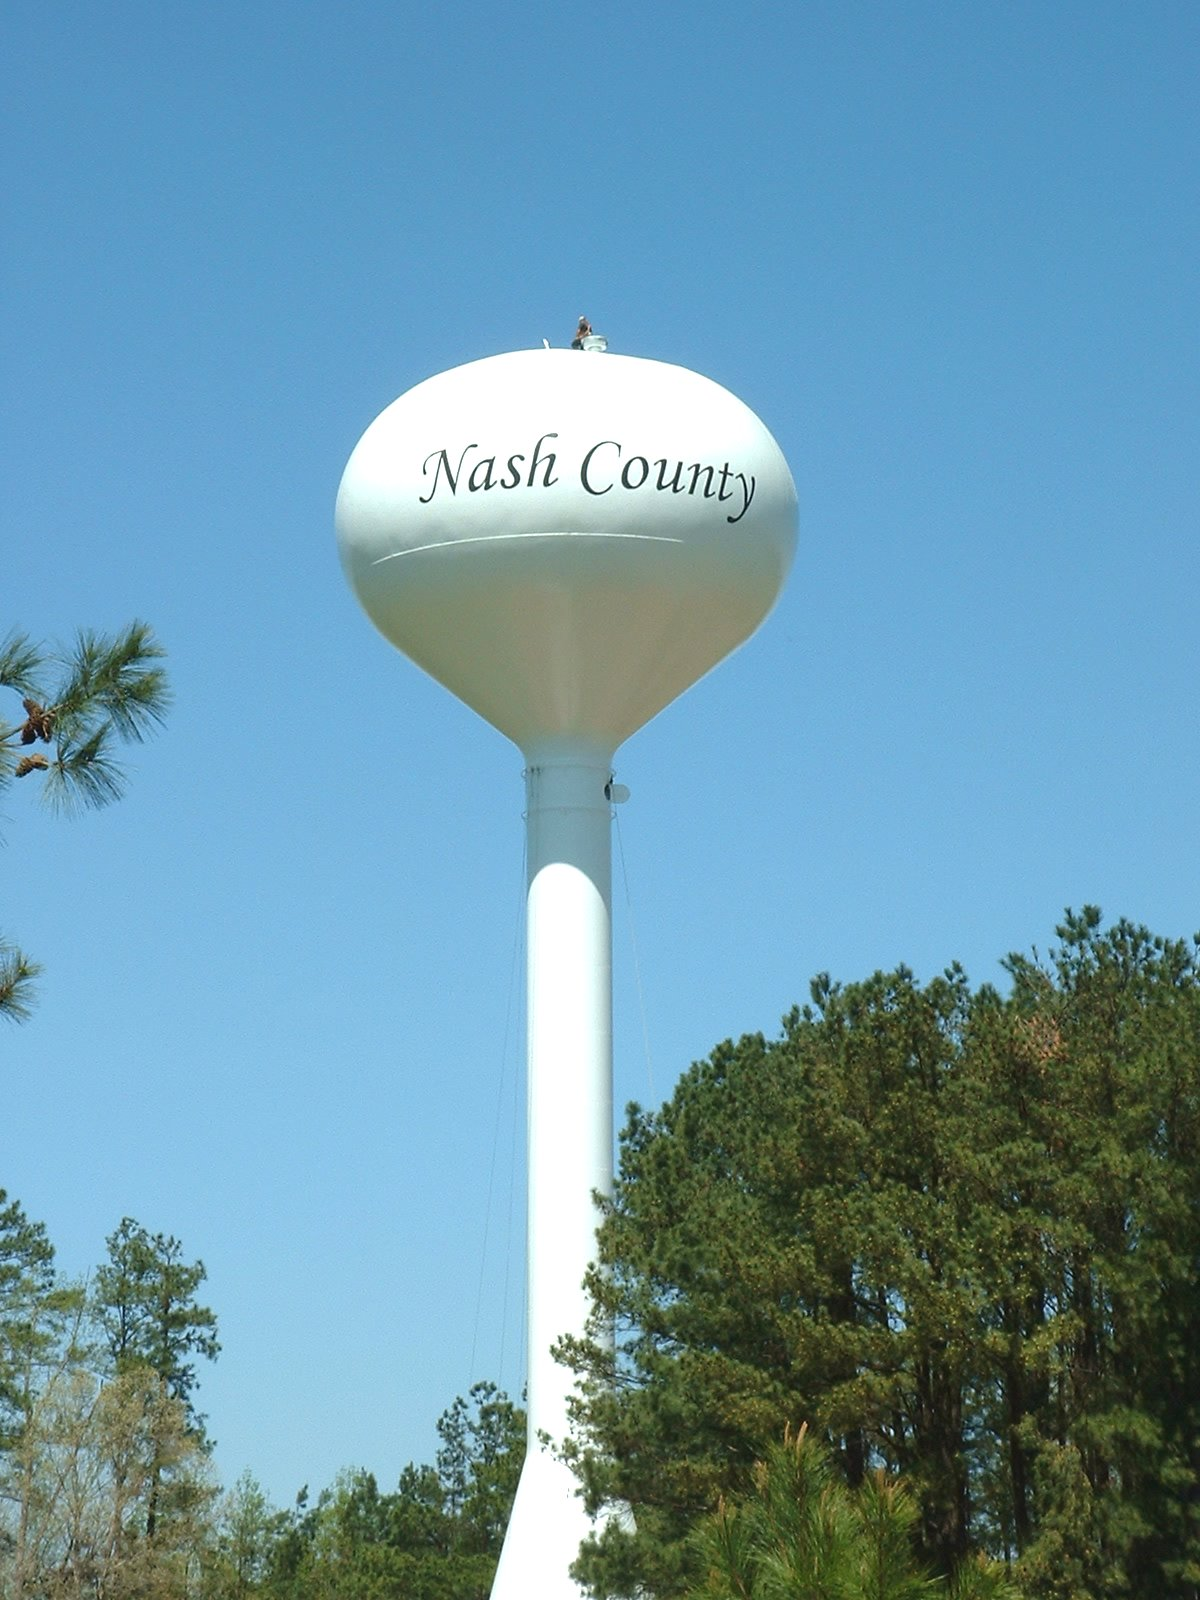 Central Nash's Water and Sewer